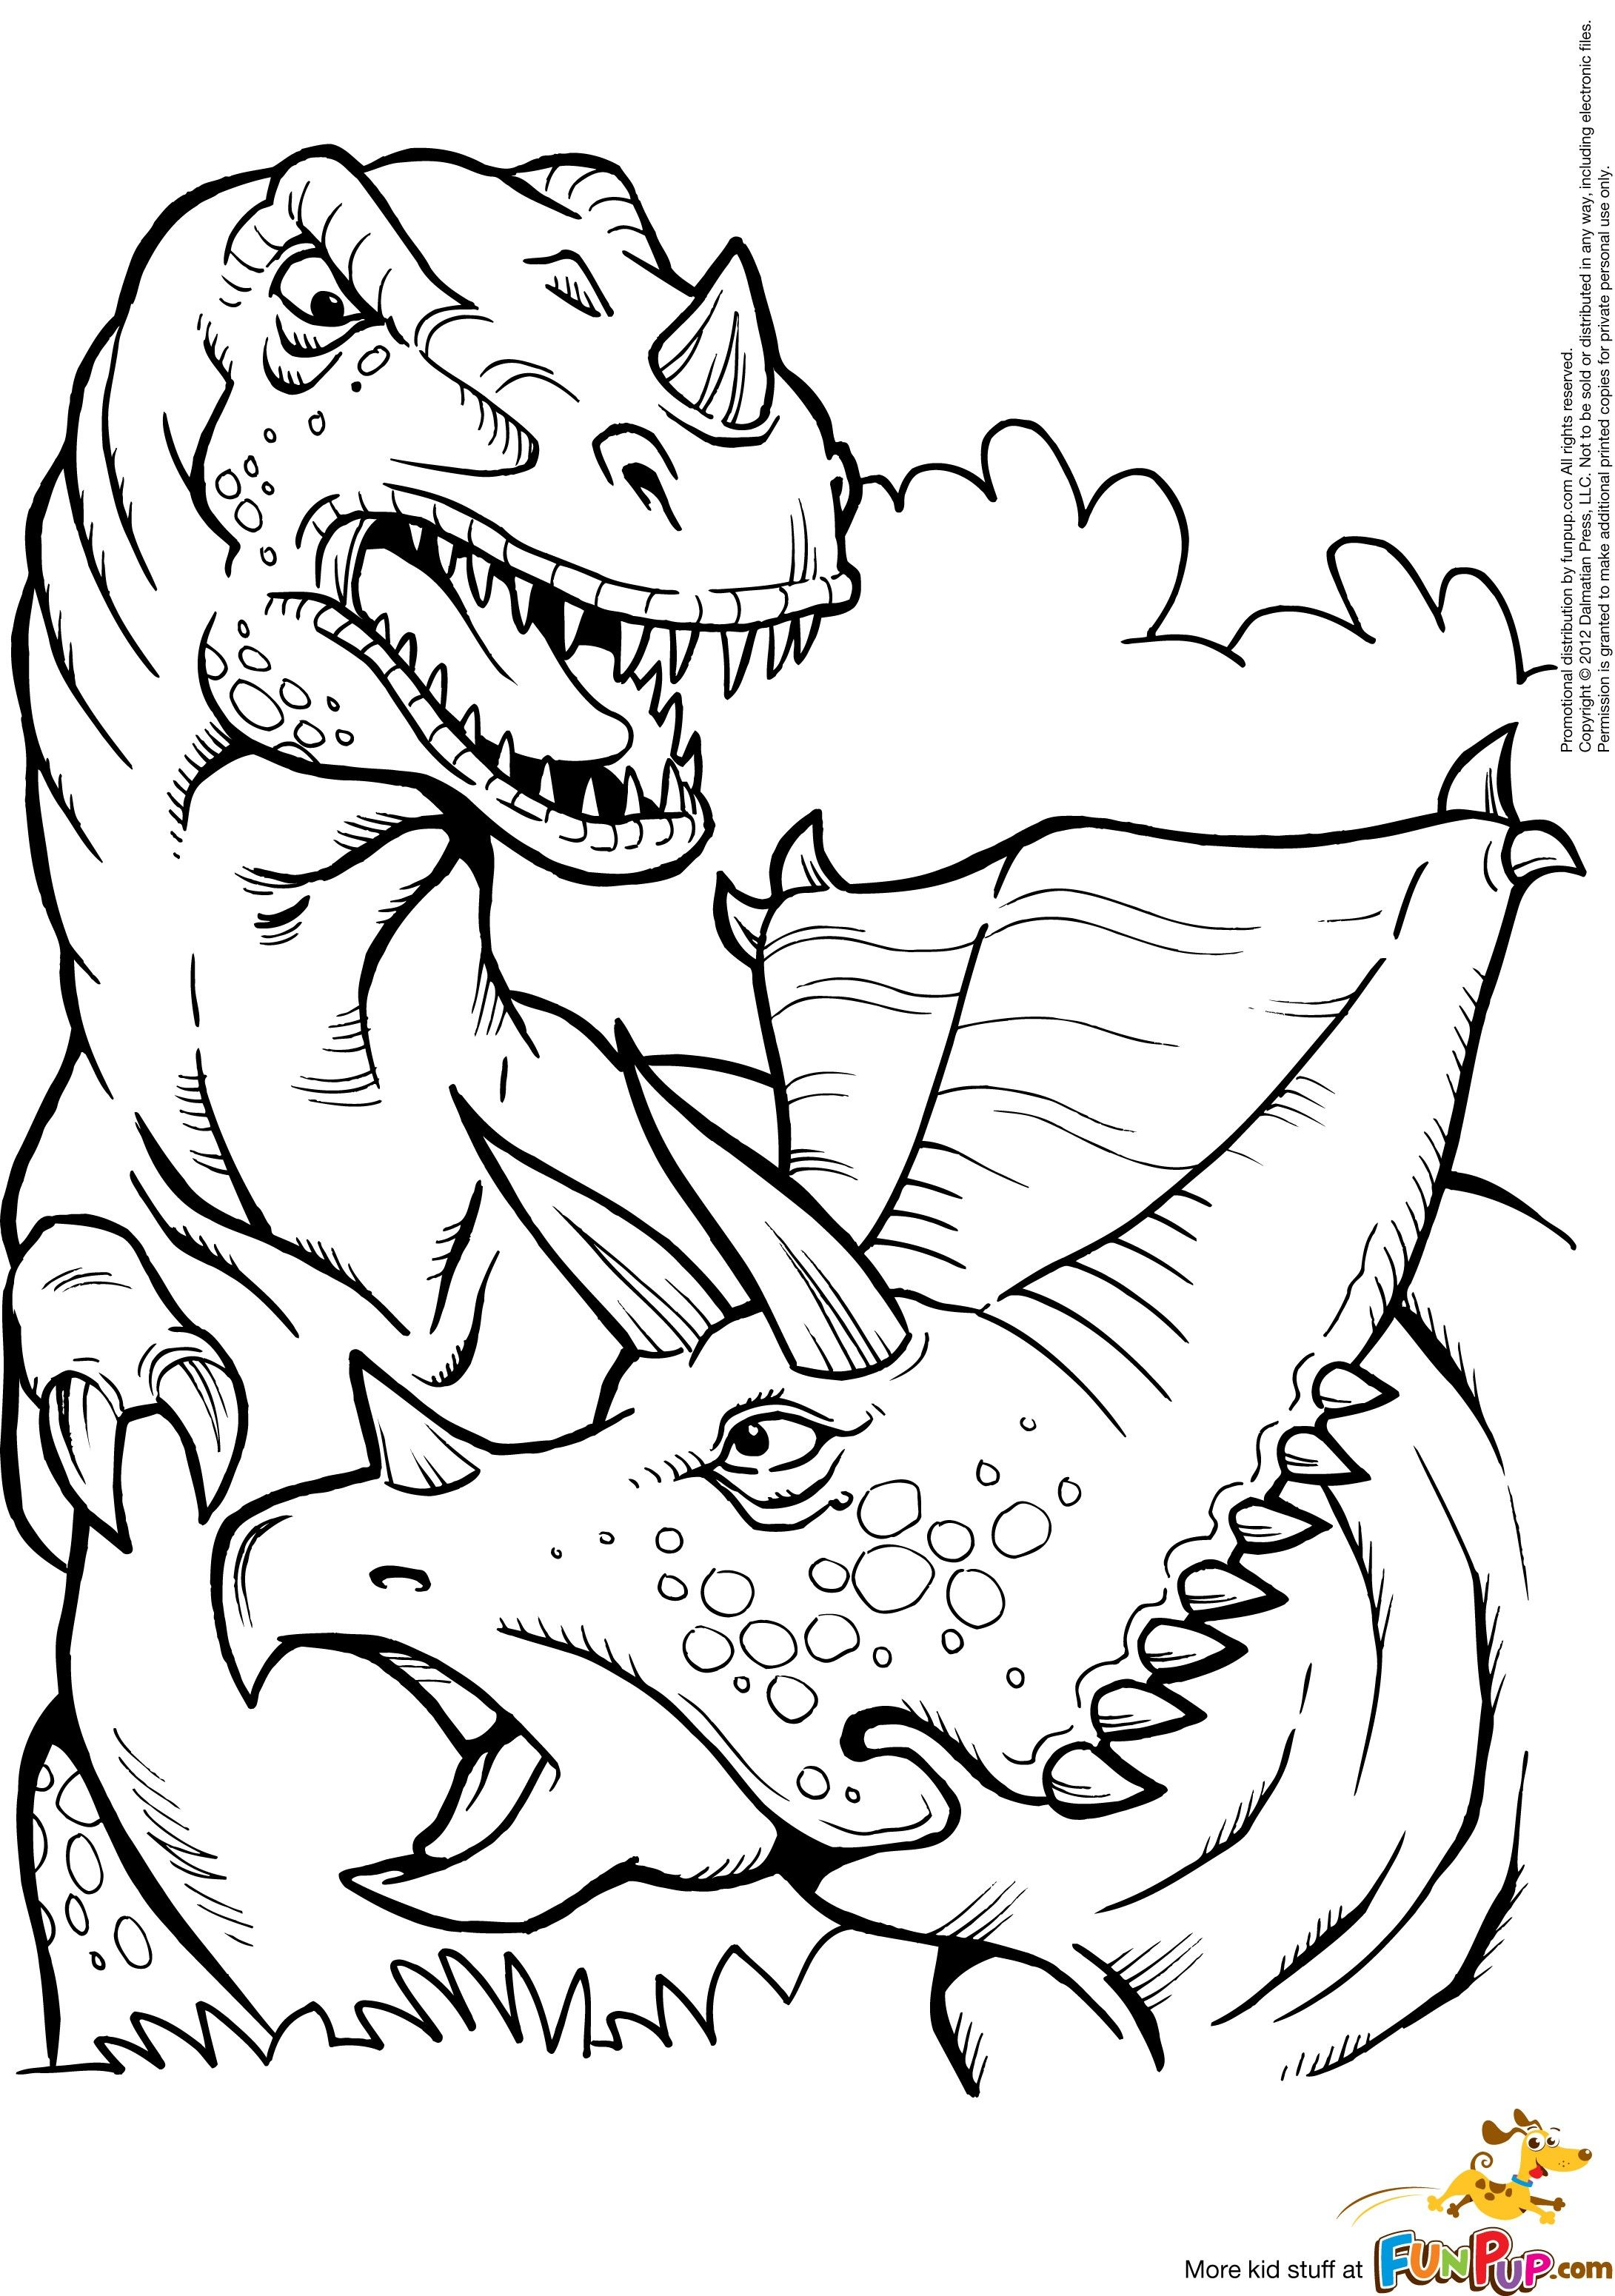 T-Rex and Triceratops $000 Dinosaur coloring pages